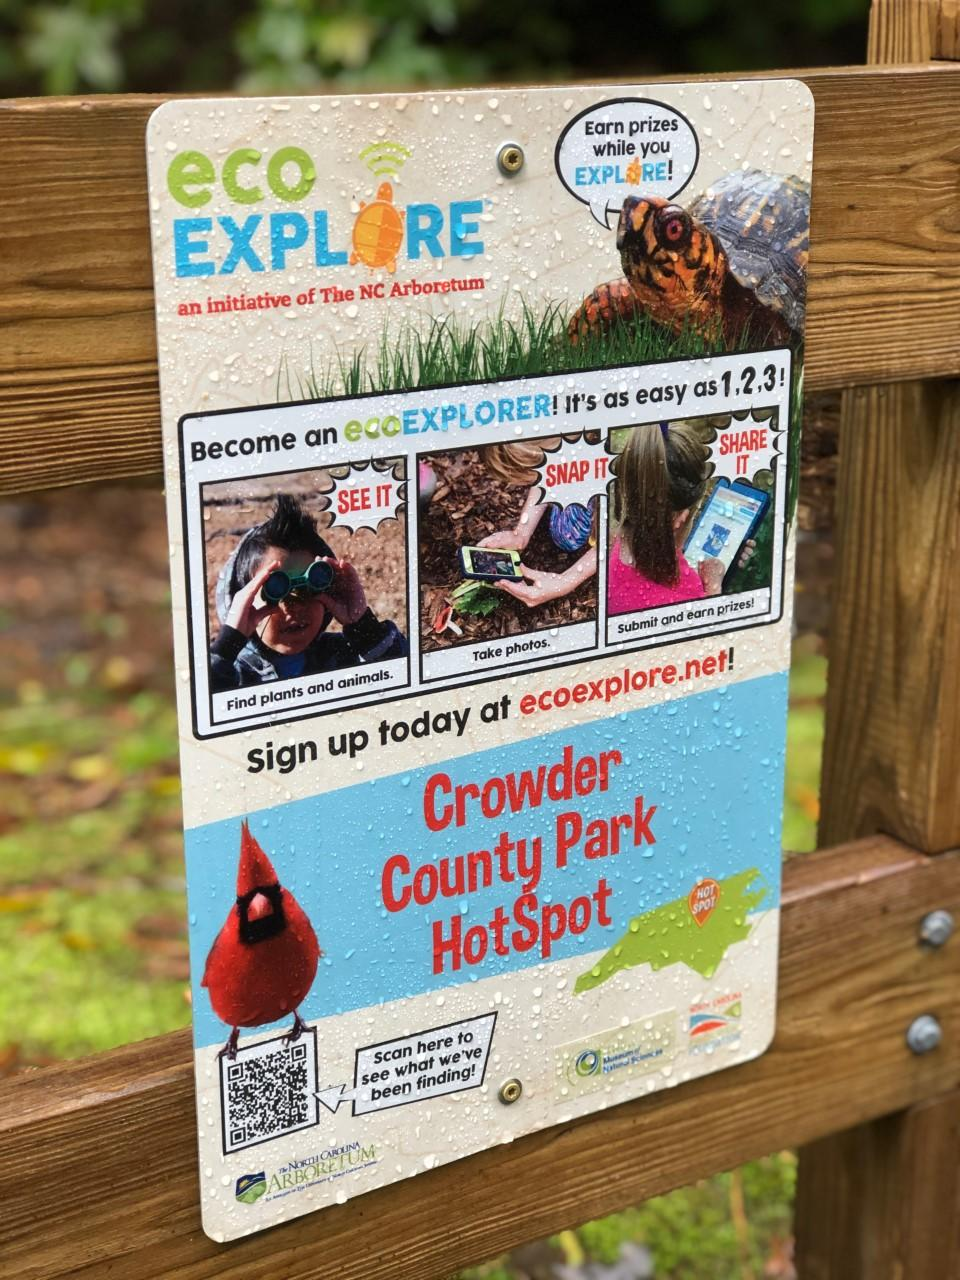 image of eco-explore sign on wooden fence posts